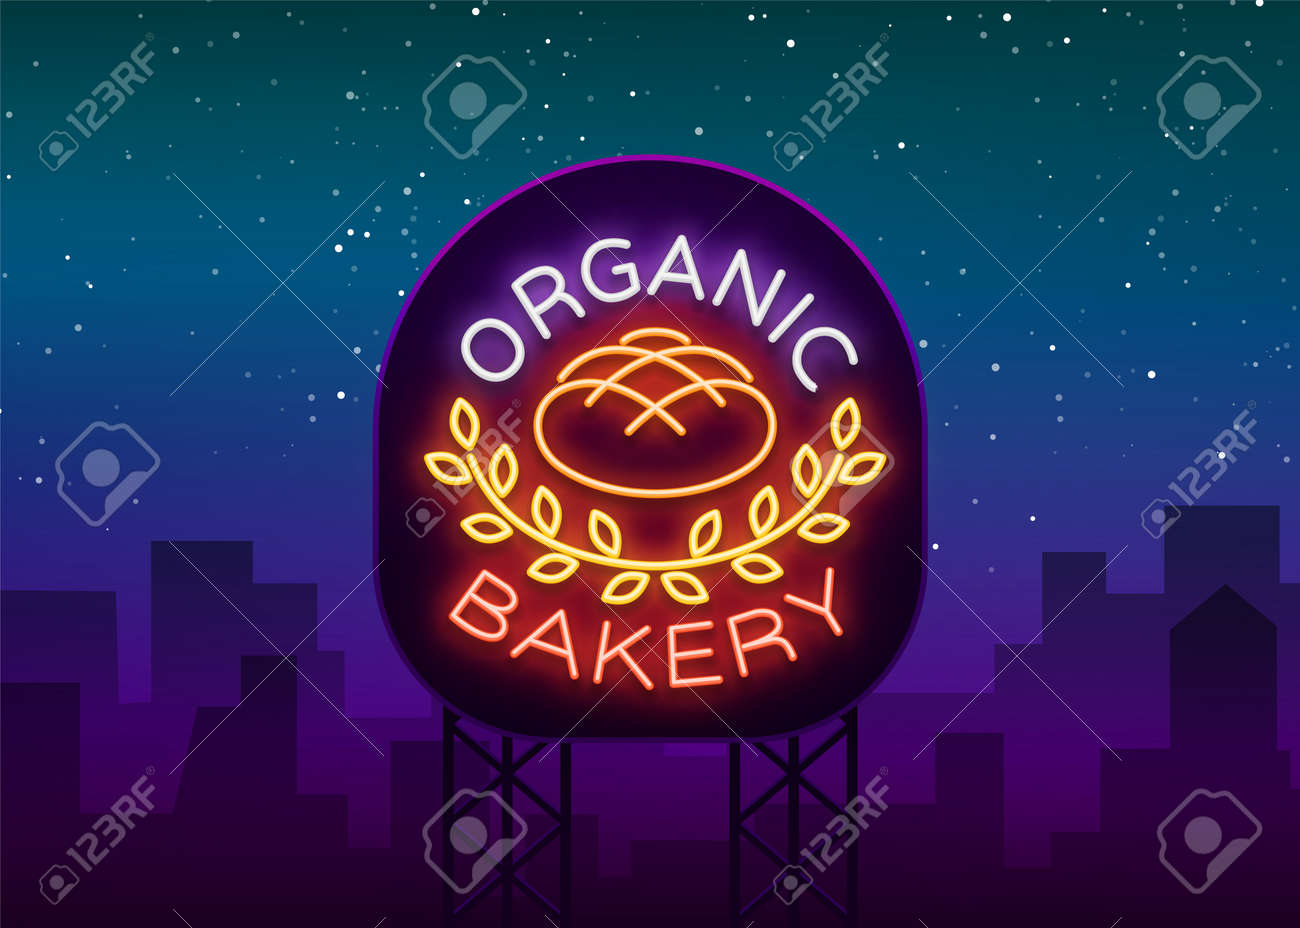 Bakery organic logo, fresh bread, loaf. Vector illustration on bakery, baking, confectionery. Natural baking. Neon sign, vivid advertising, luminous symbol for your projects. - 97575720